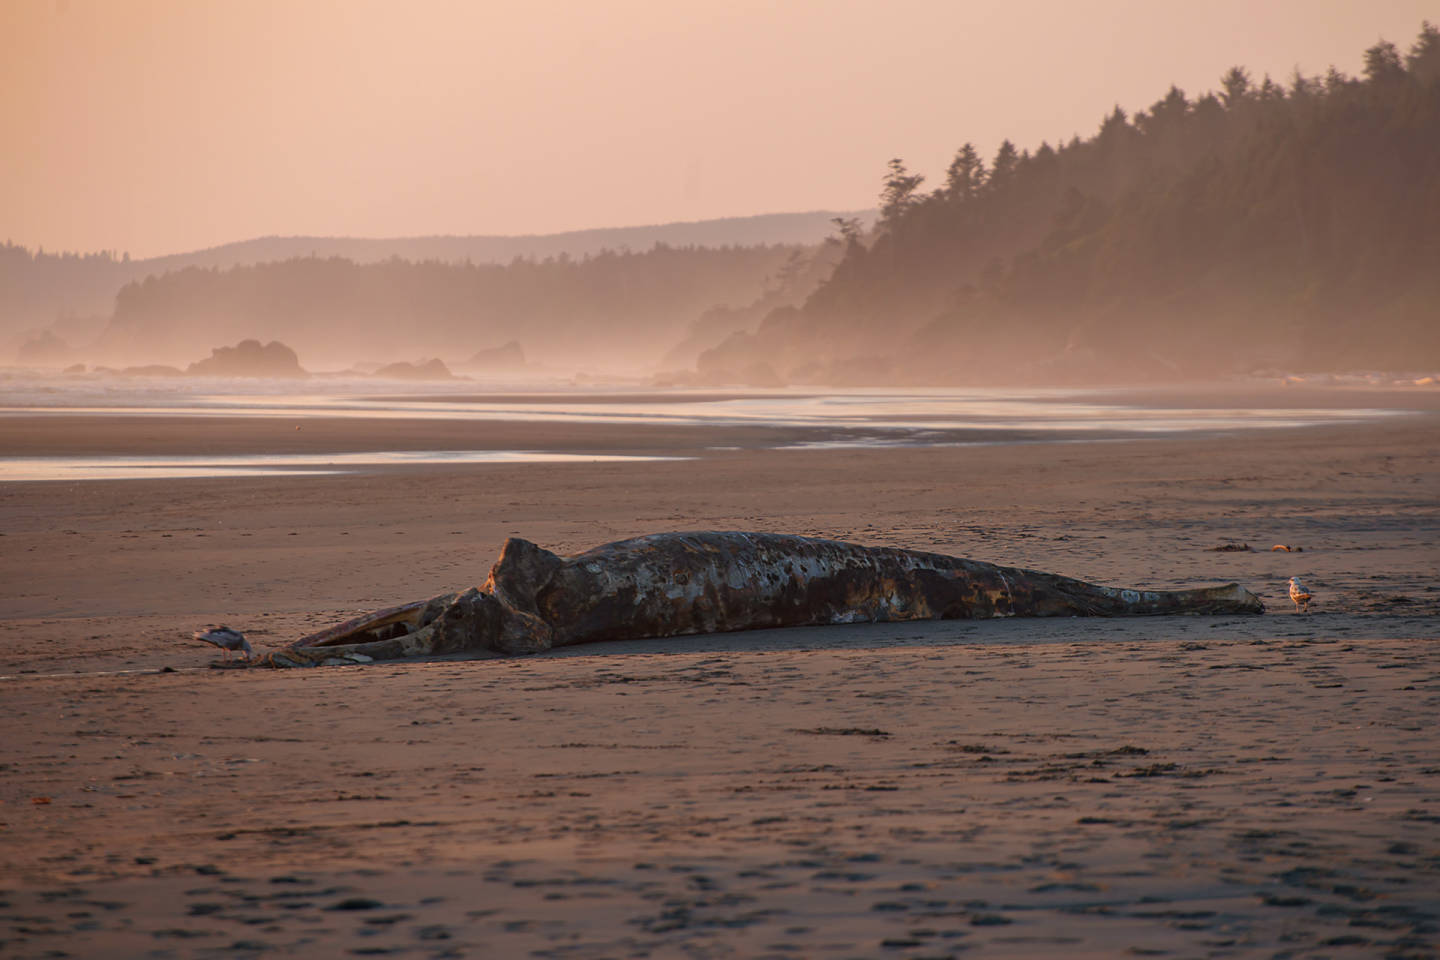 Beached Whale at Kalaloch Beach, Olympic NP